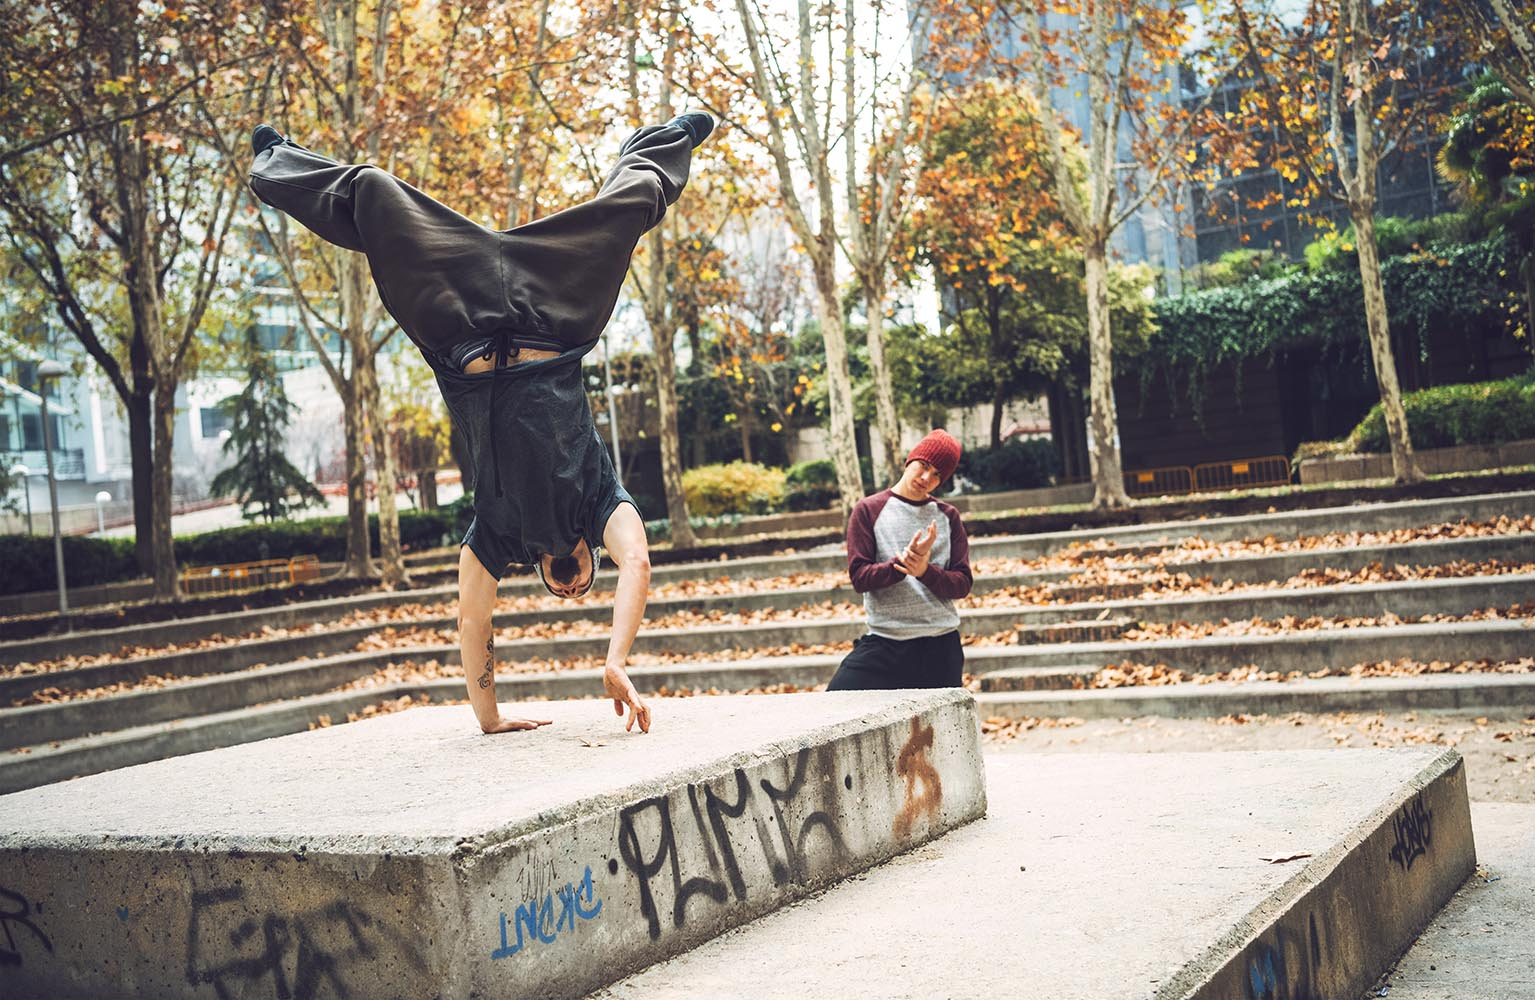 Parkour athletes training together in park